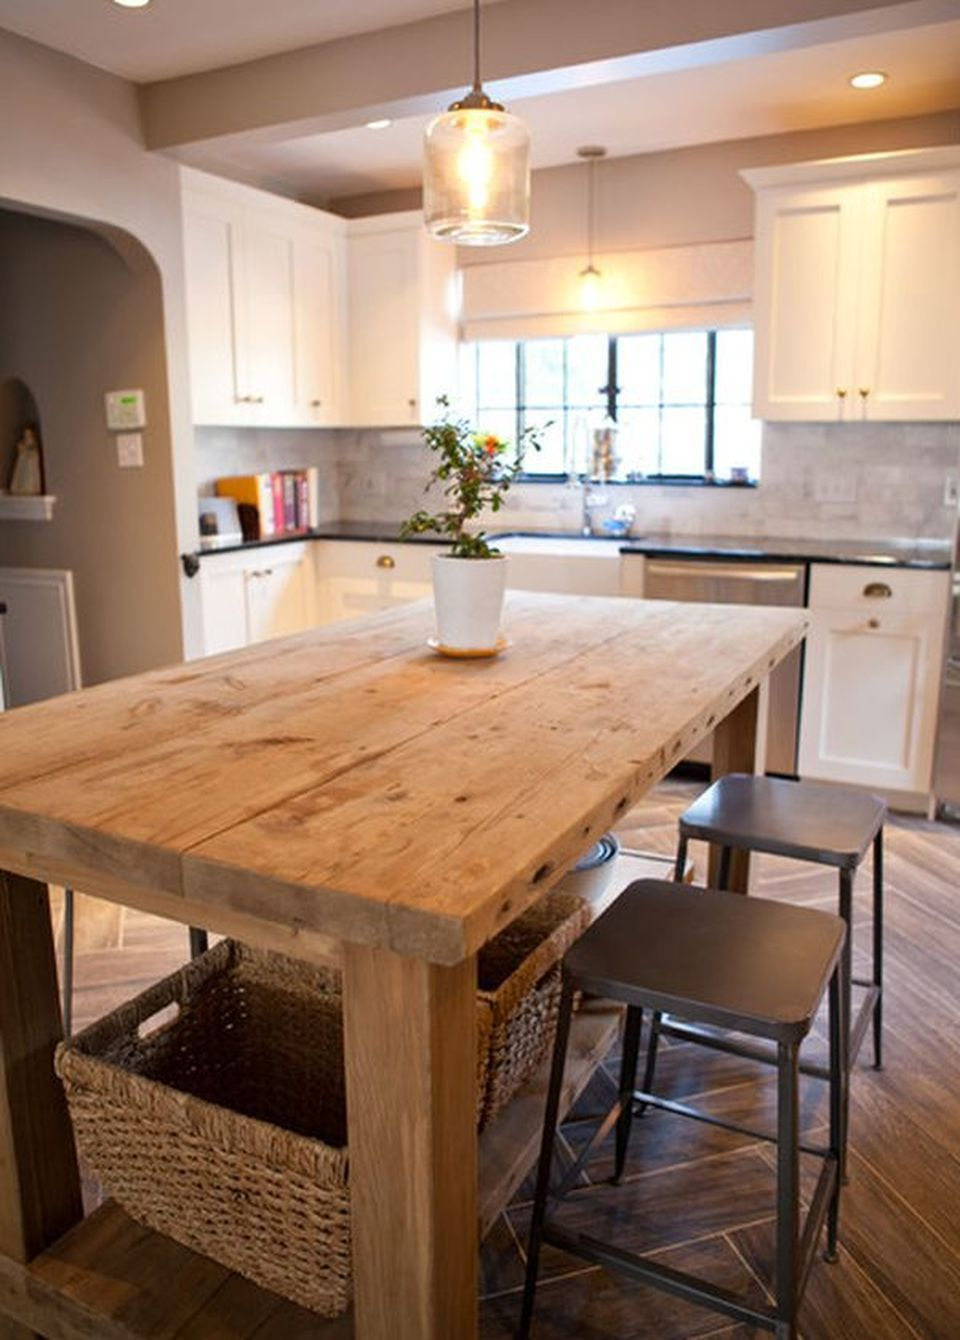 vintage farmhouse kitchen island inspirations 39 kitchen island with seating kitchen island on kitchen island id=96678